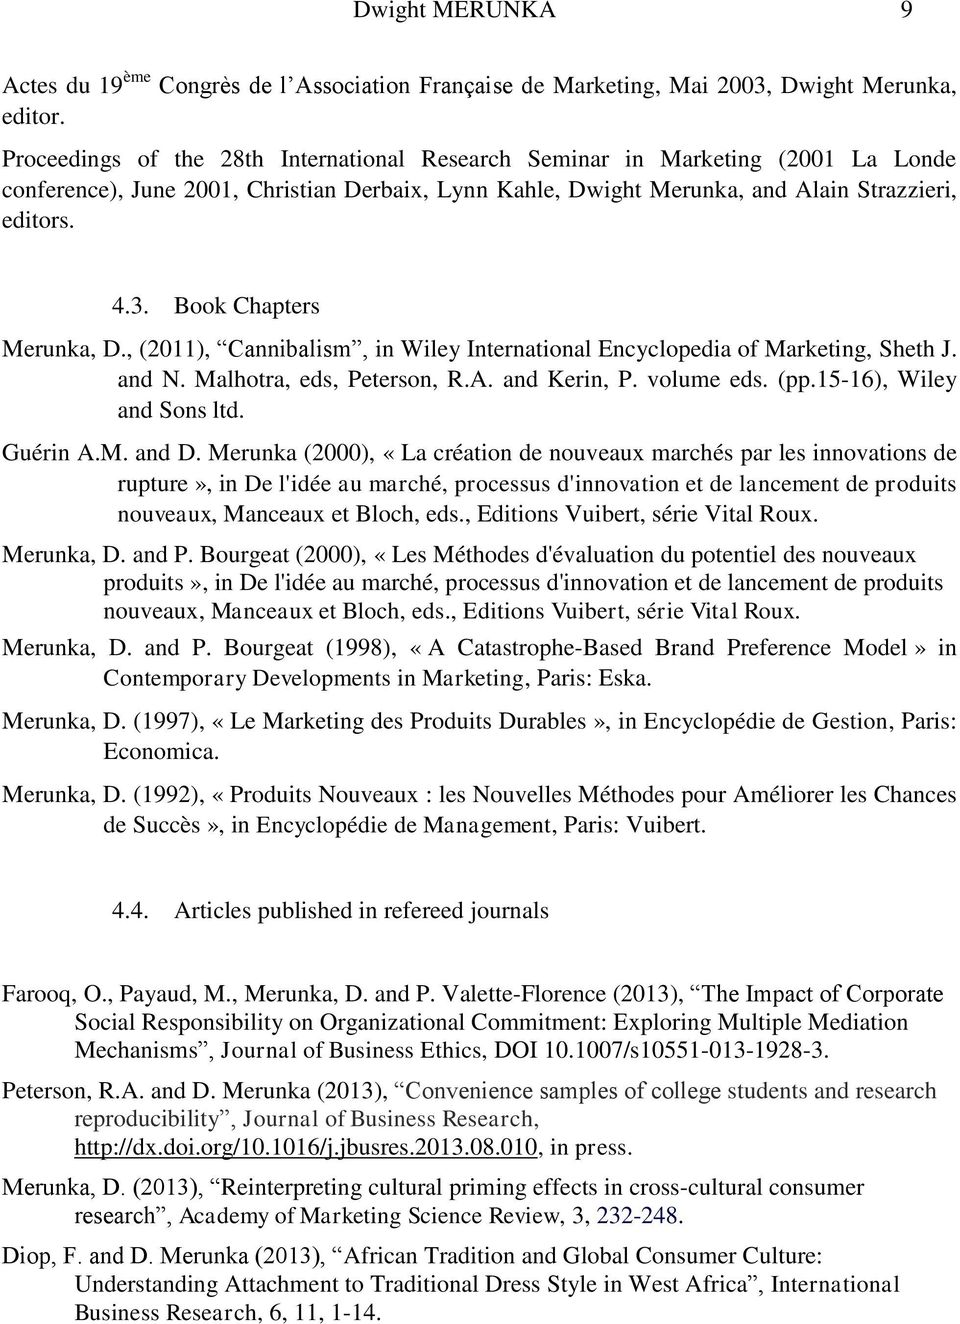 Book Chapters Merunka, D., (2011), Cannibalism, in Wiley International Encyclopedia of Marketing, Sheth J. and N. Malhotra, eds, Peterson, R.A. and Kerin, P. volume eds. (pp.